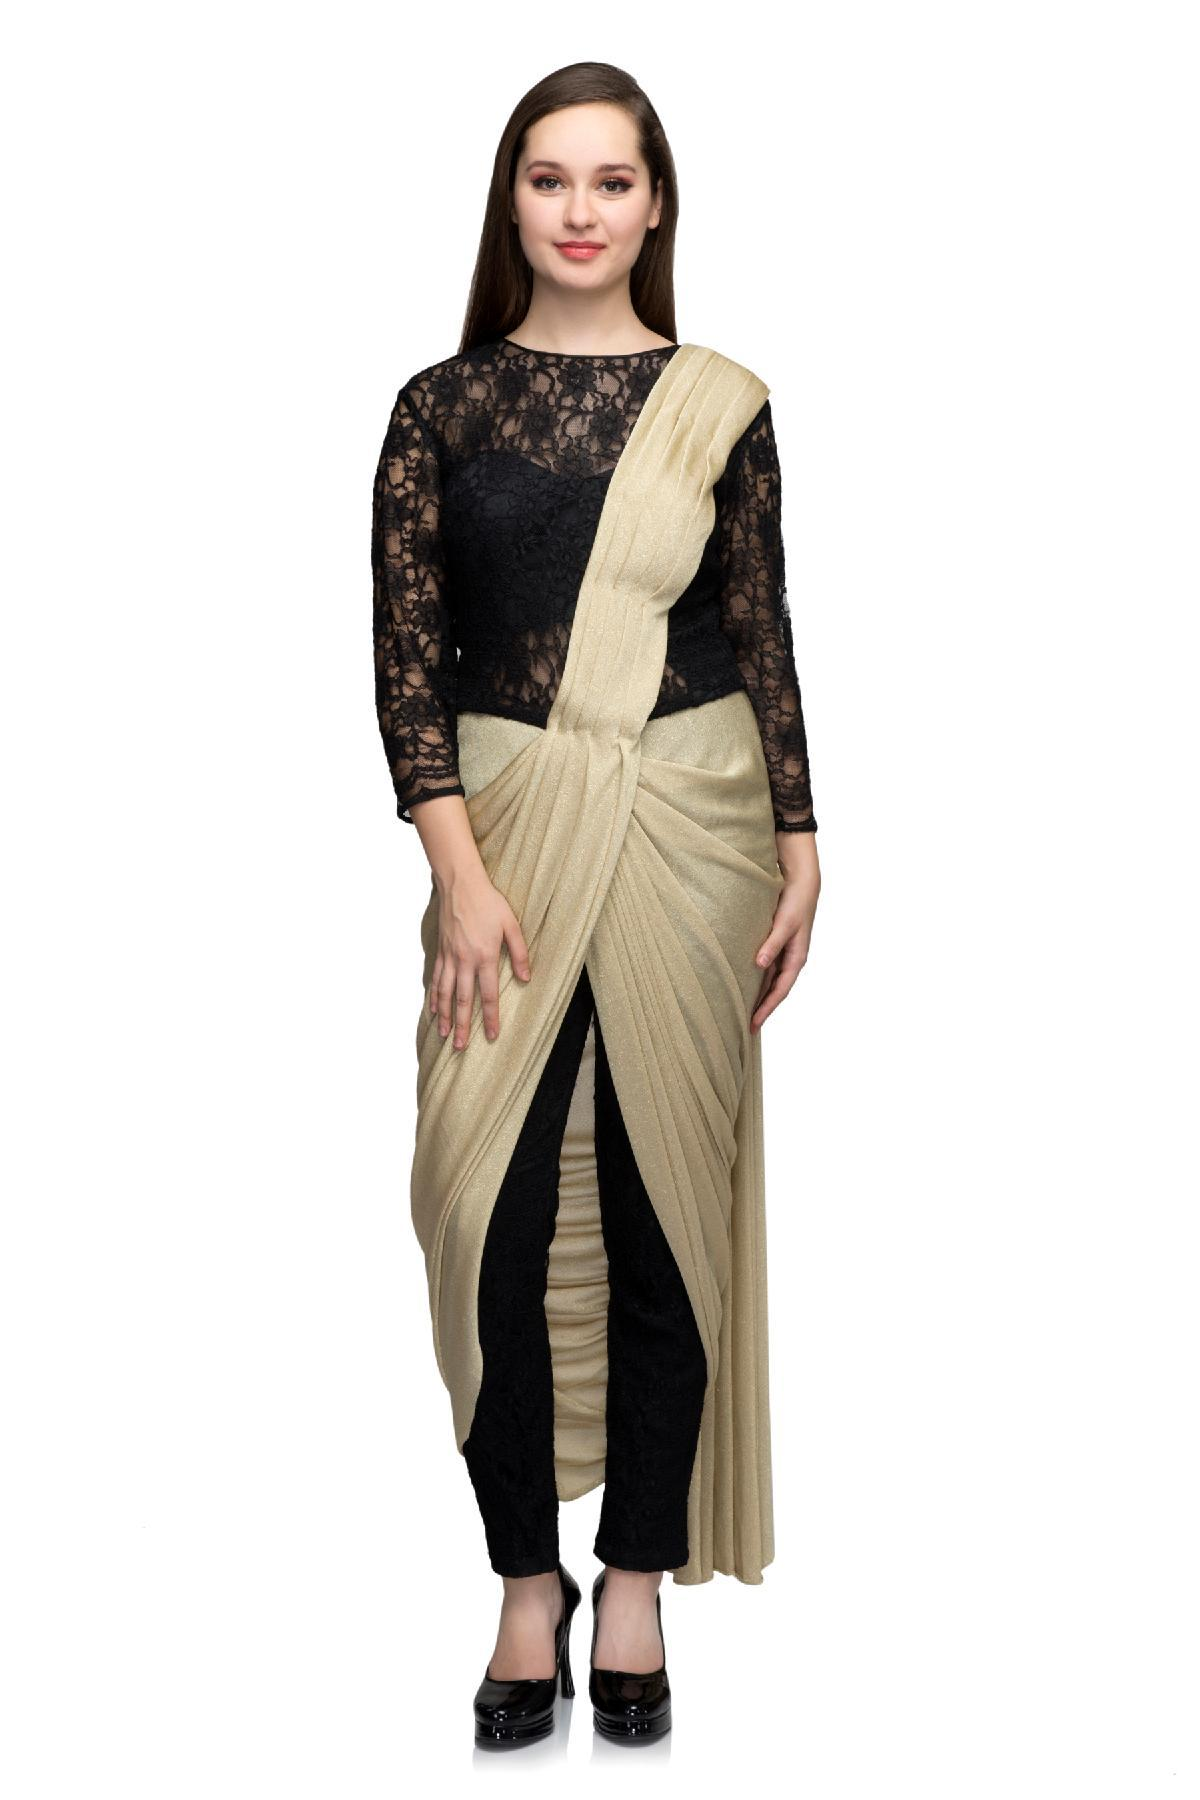 Black & Golden Golden & Black Draped Saree Gown by ONRAA for rent ...